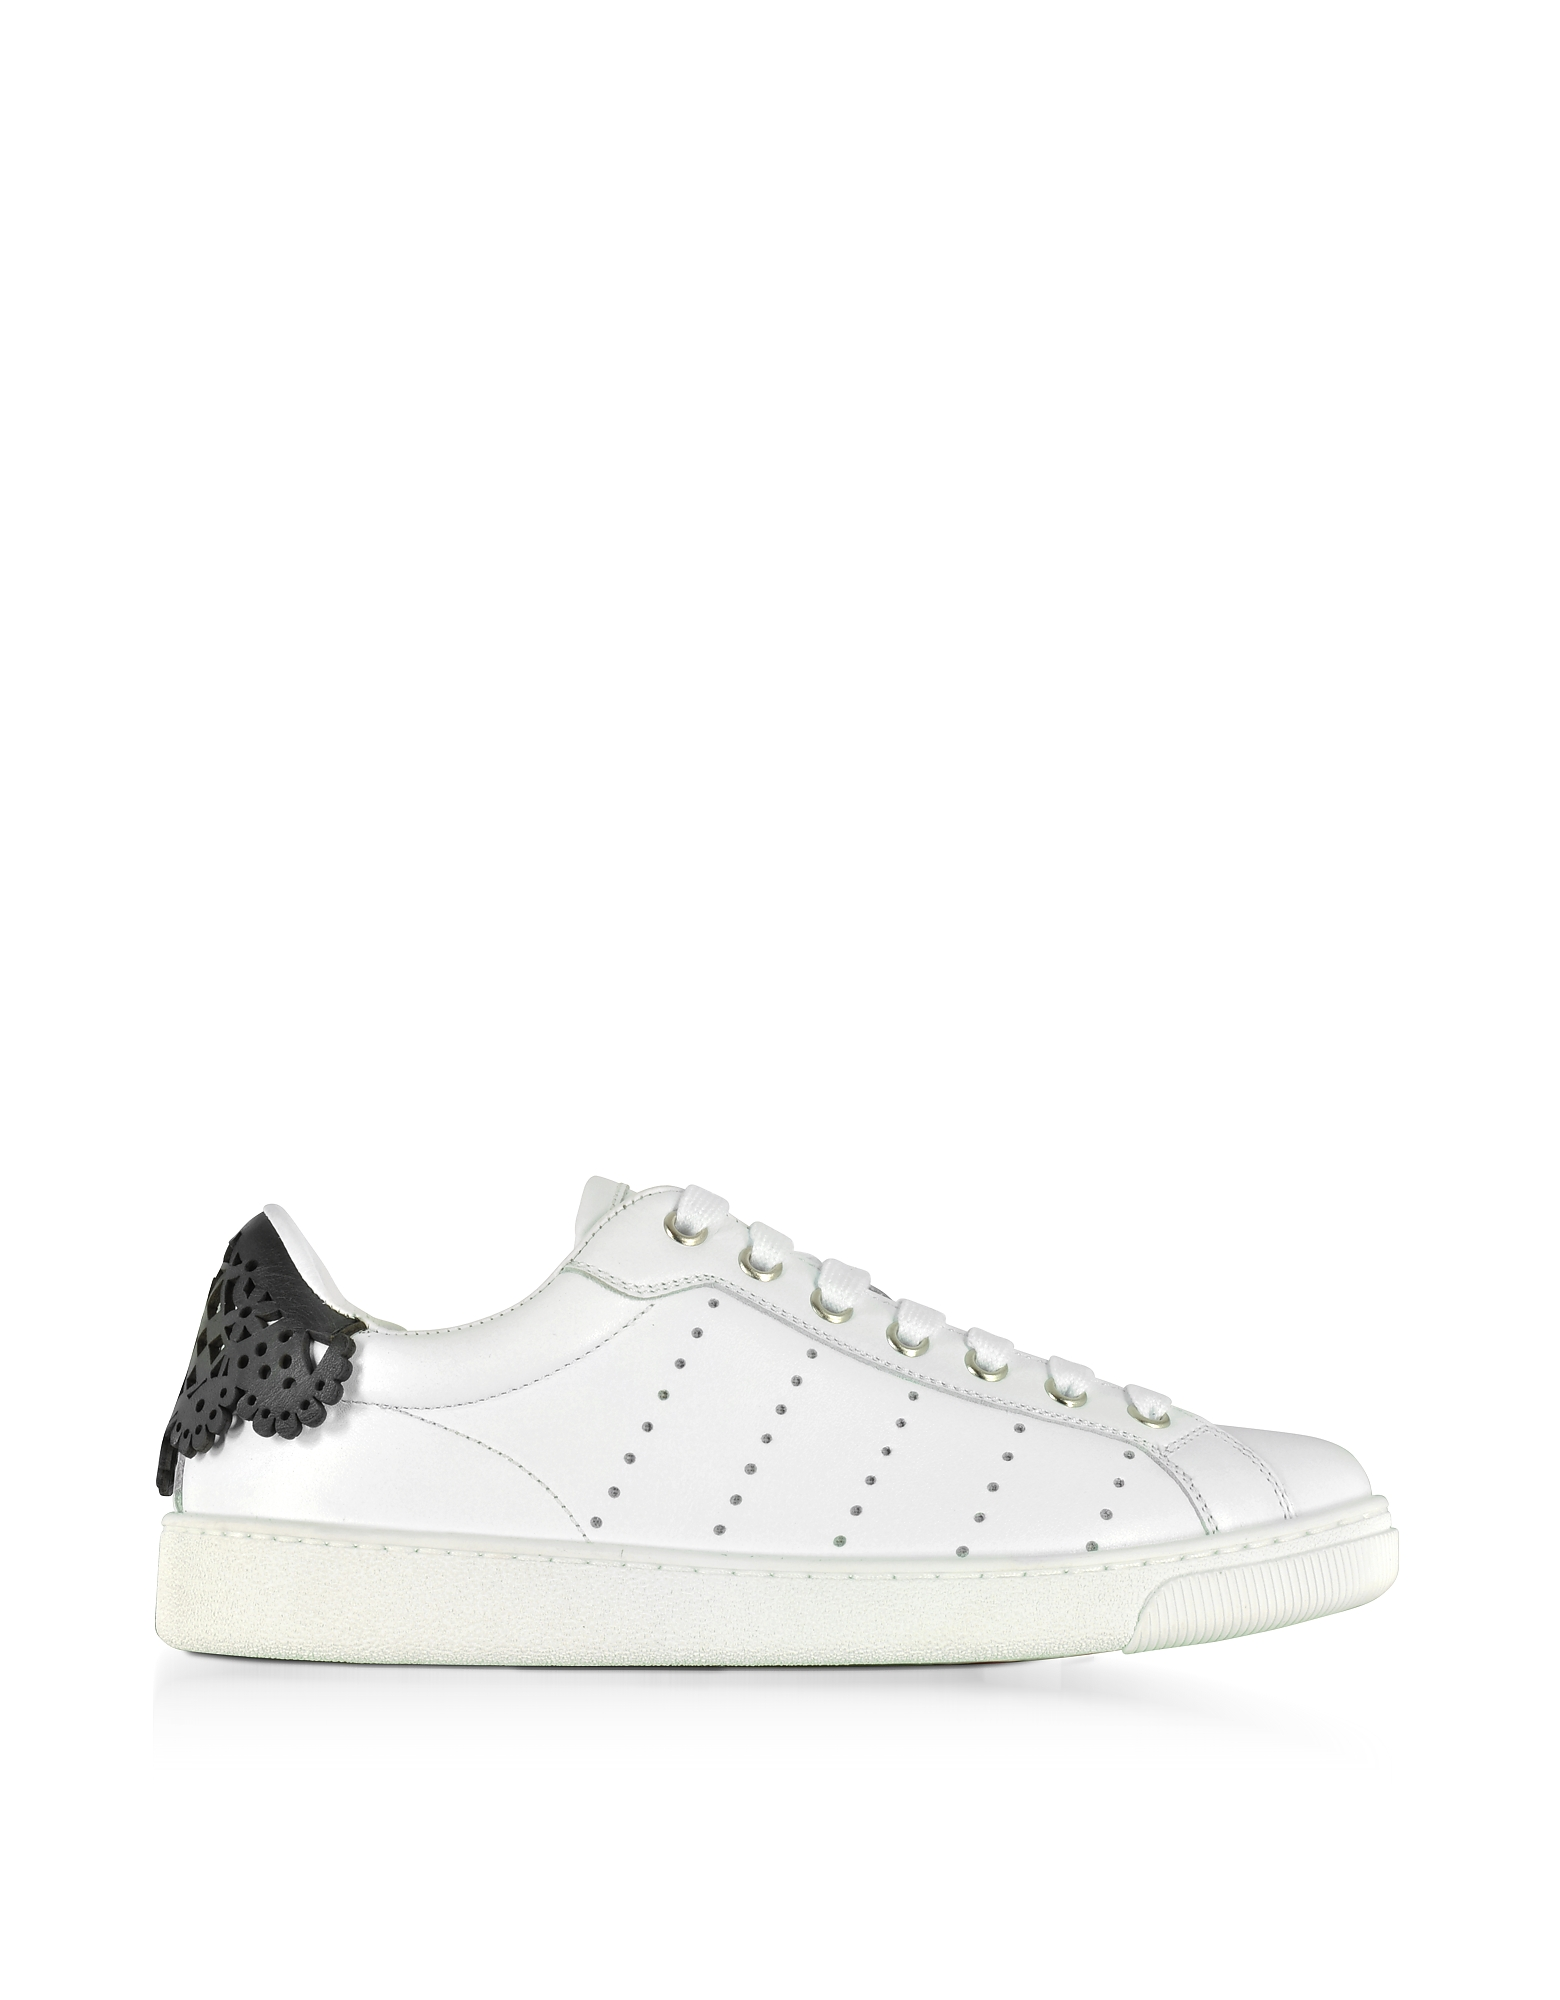 DSquared2 Shoes, Santa Monica White and Floral Black Leather Women's Sneakers